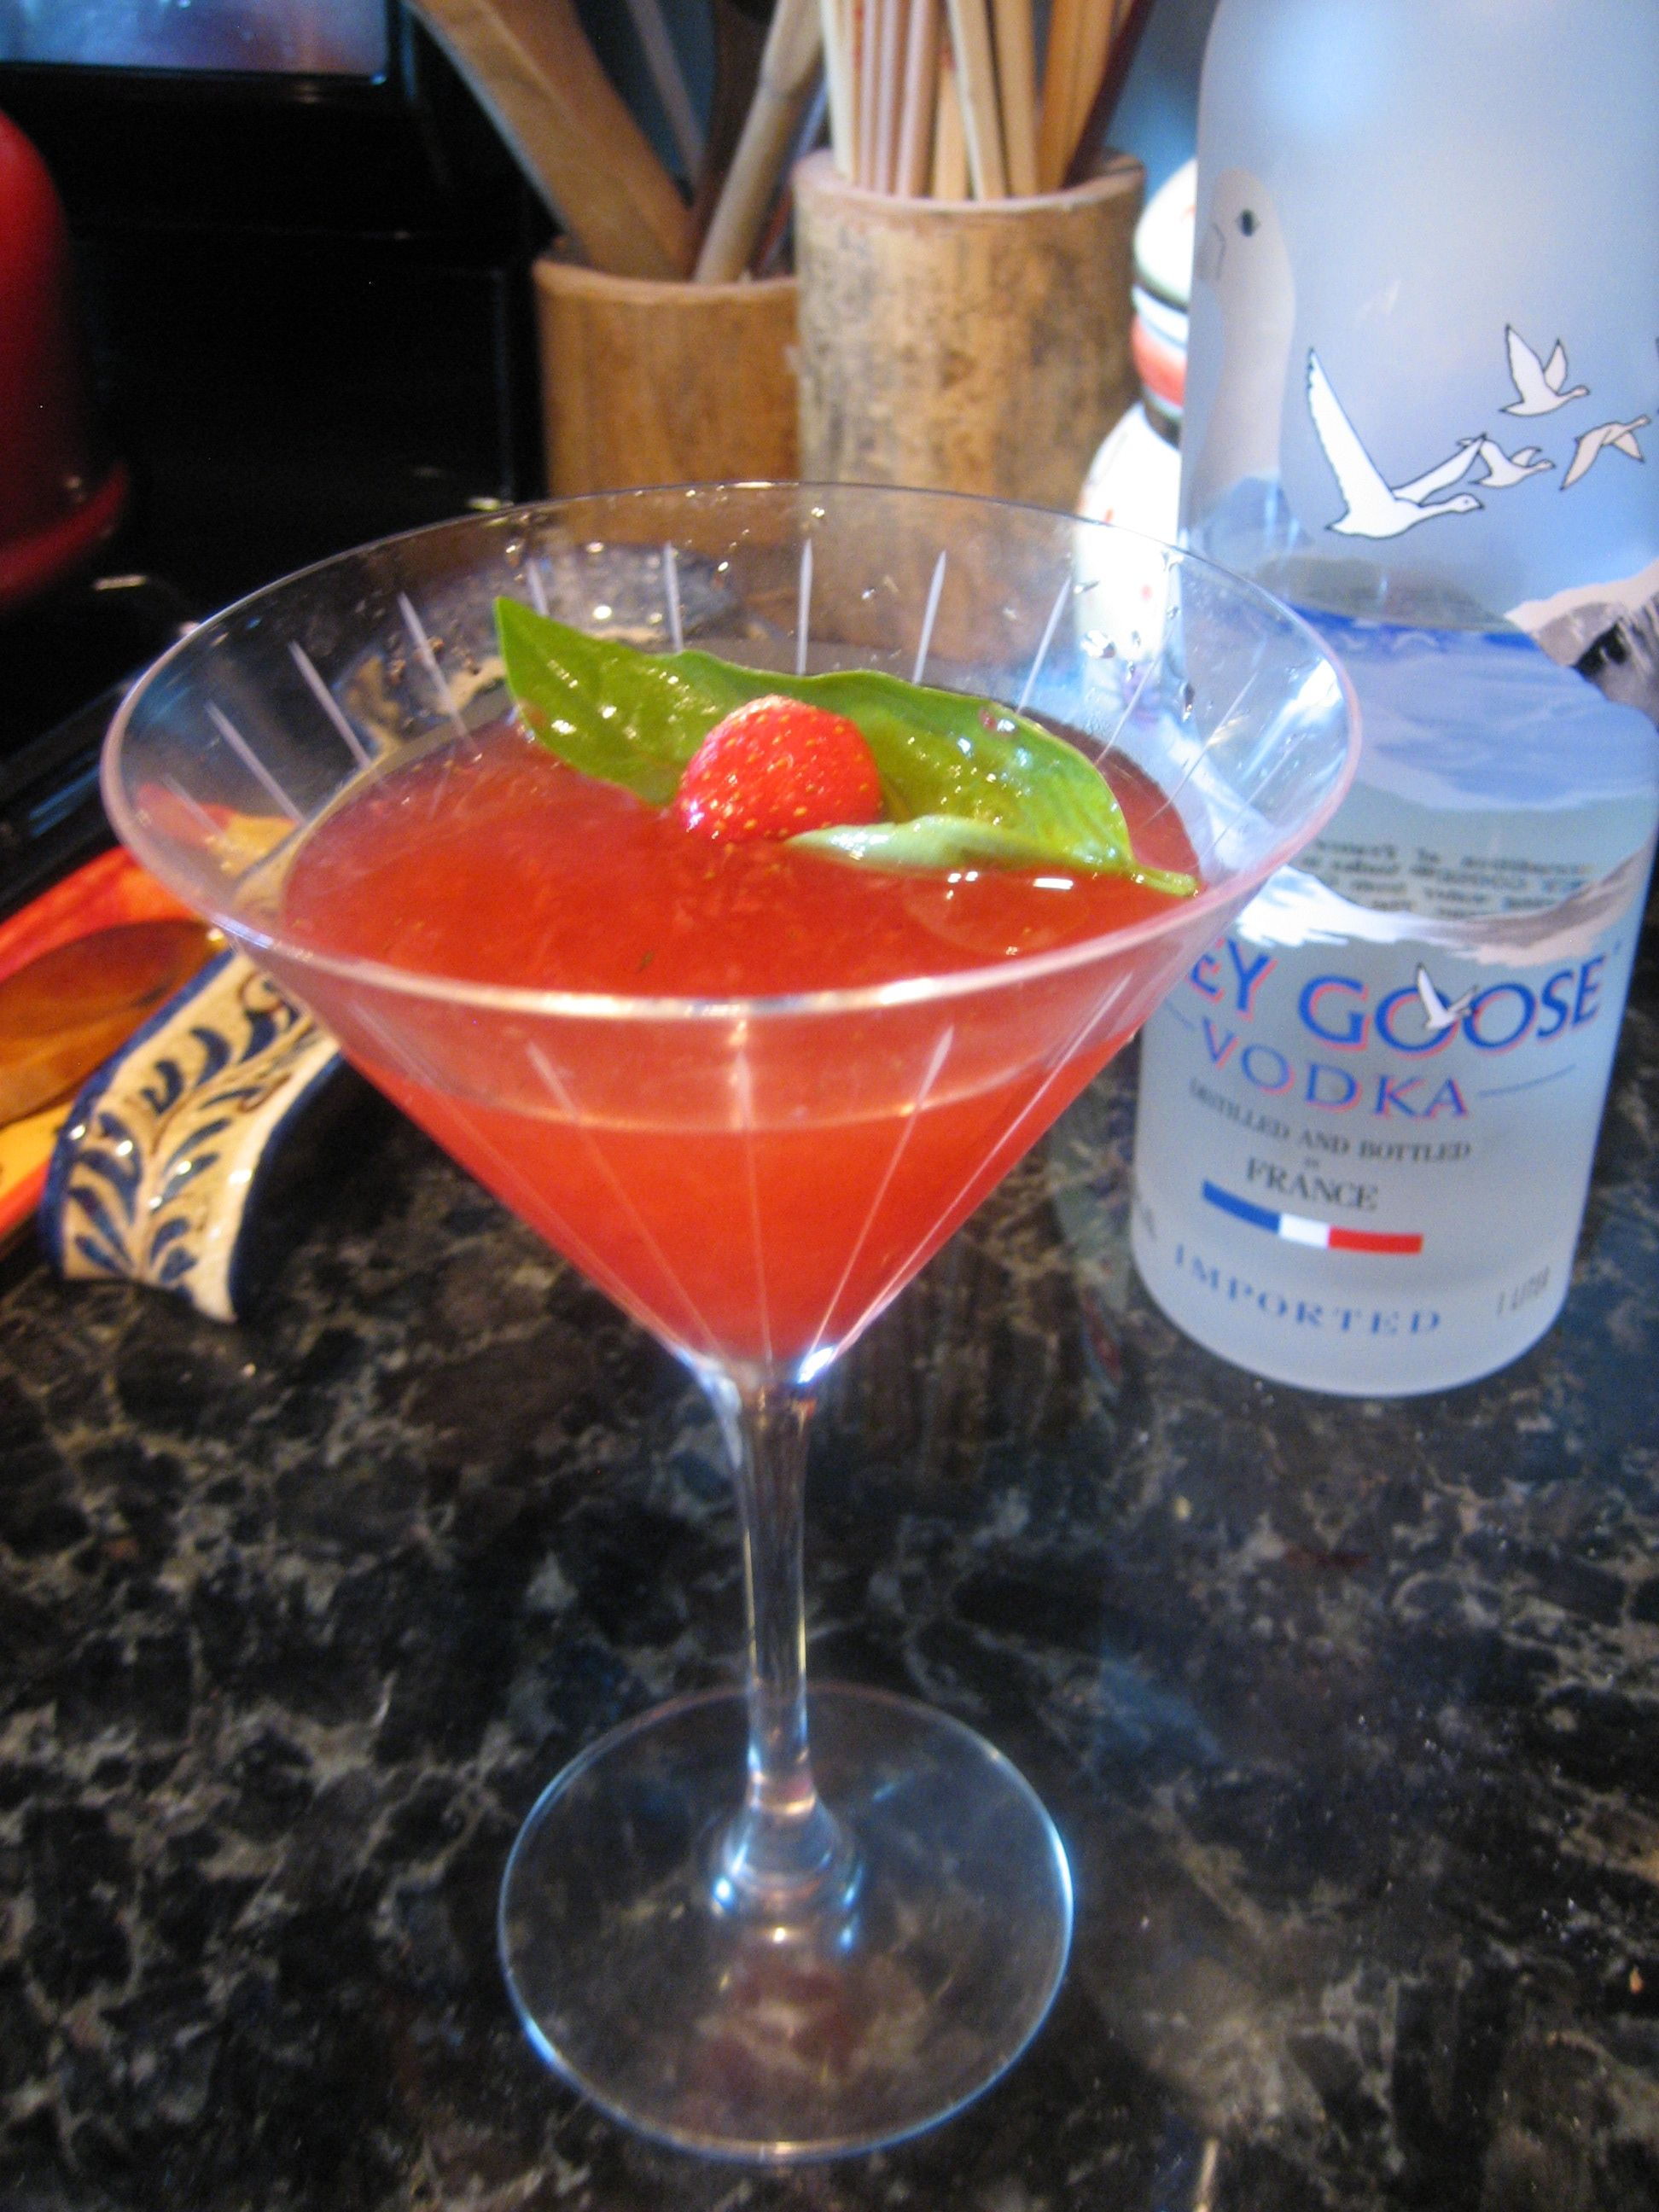 Strawberry Basil Martini: Muddle 5 strawberries, 1 basil leaf, and 2 tsp sugar. Allow to sit for at least 5 minutes. Add 1oz vodka and handful of ice. Shake. Strain into a martini glass and garnish with additional basil leaves.